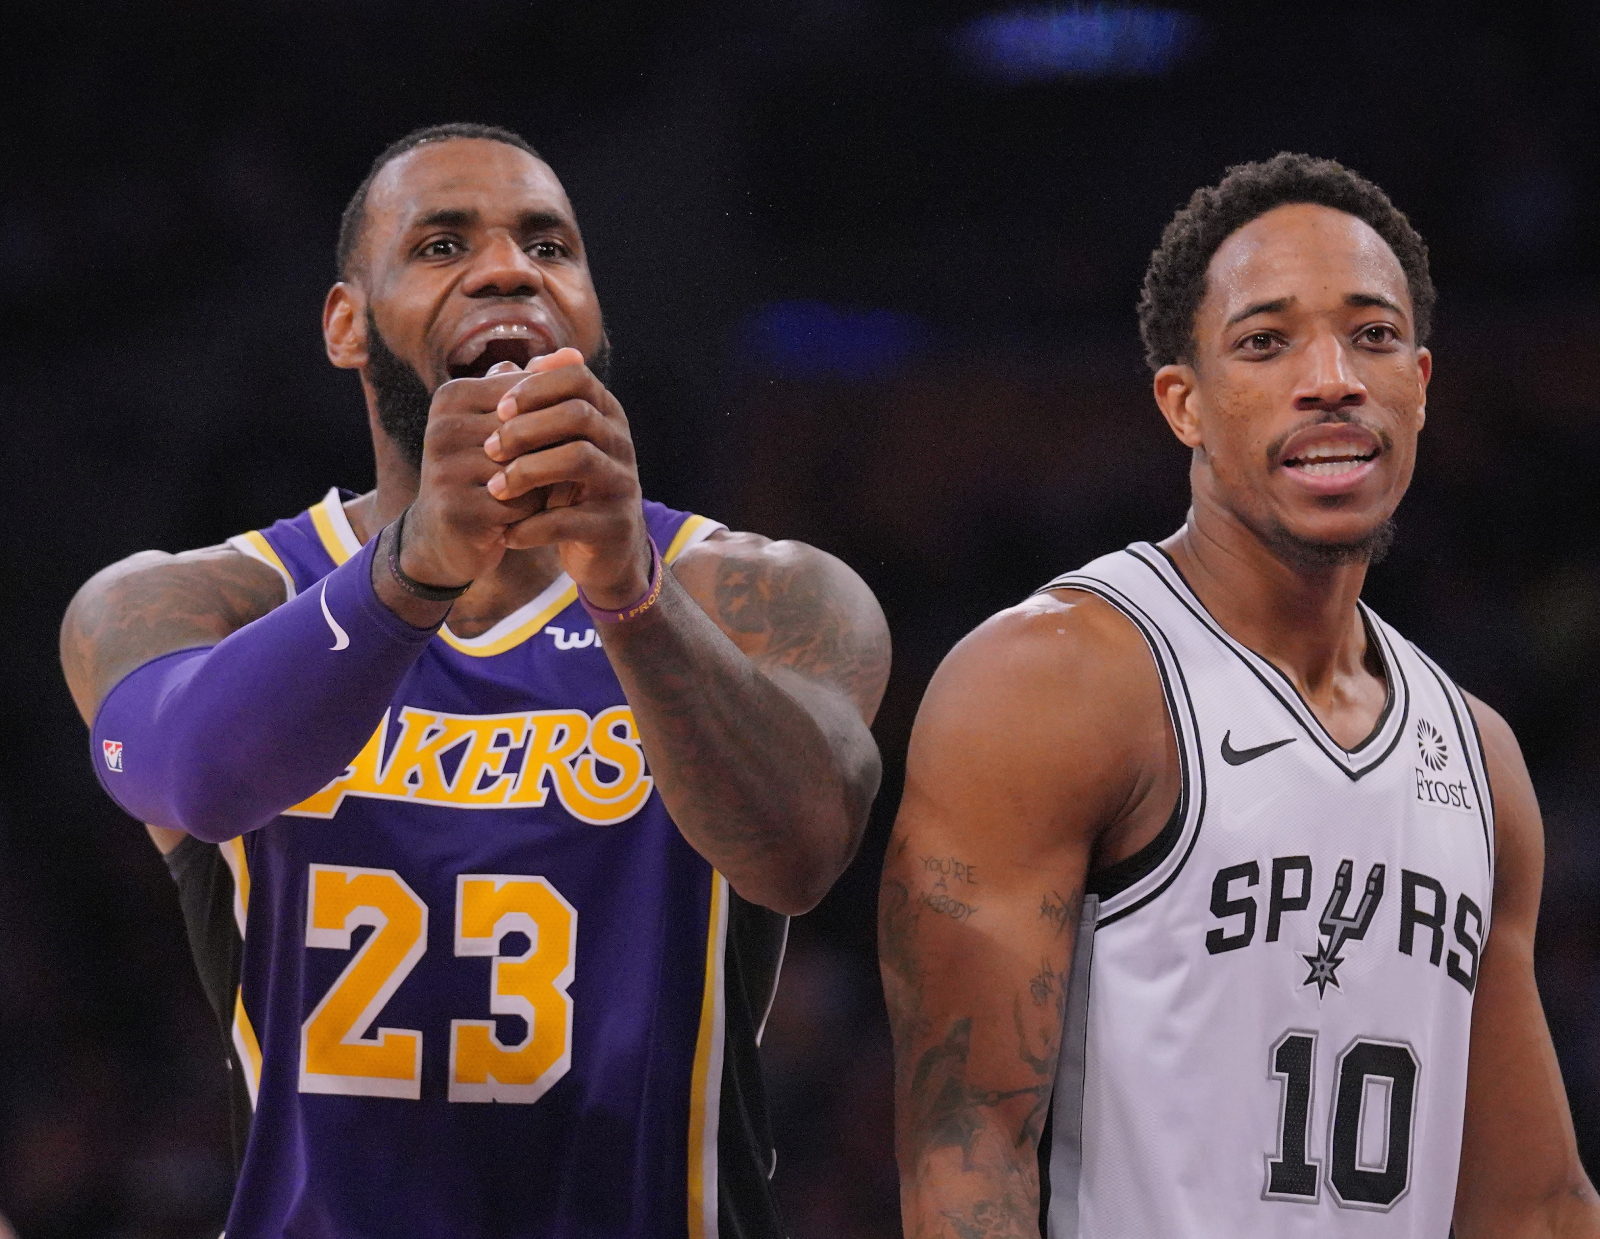 There have been recent rumors that the Lakers could be interested in trading for DeMar DeRozan. So, how does DeRozan feel about those rumors?